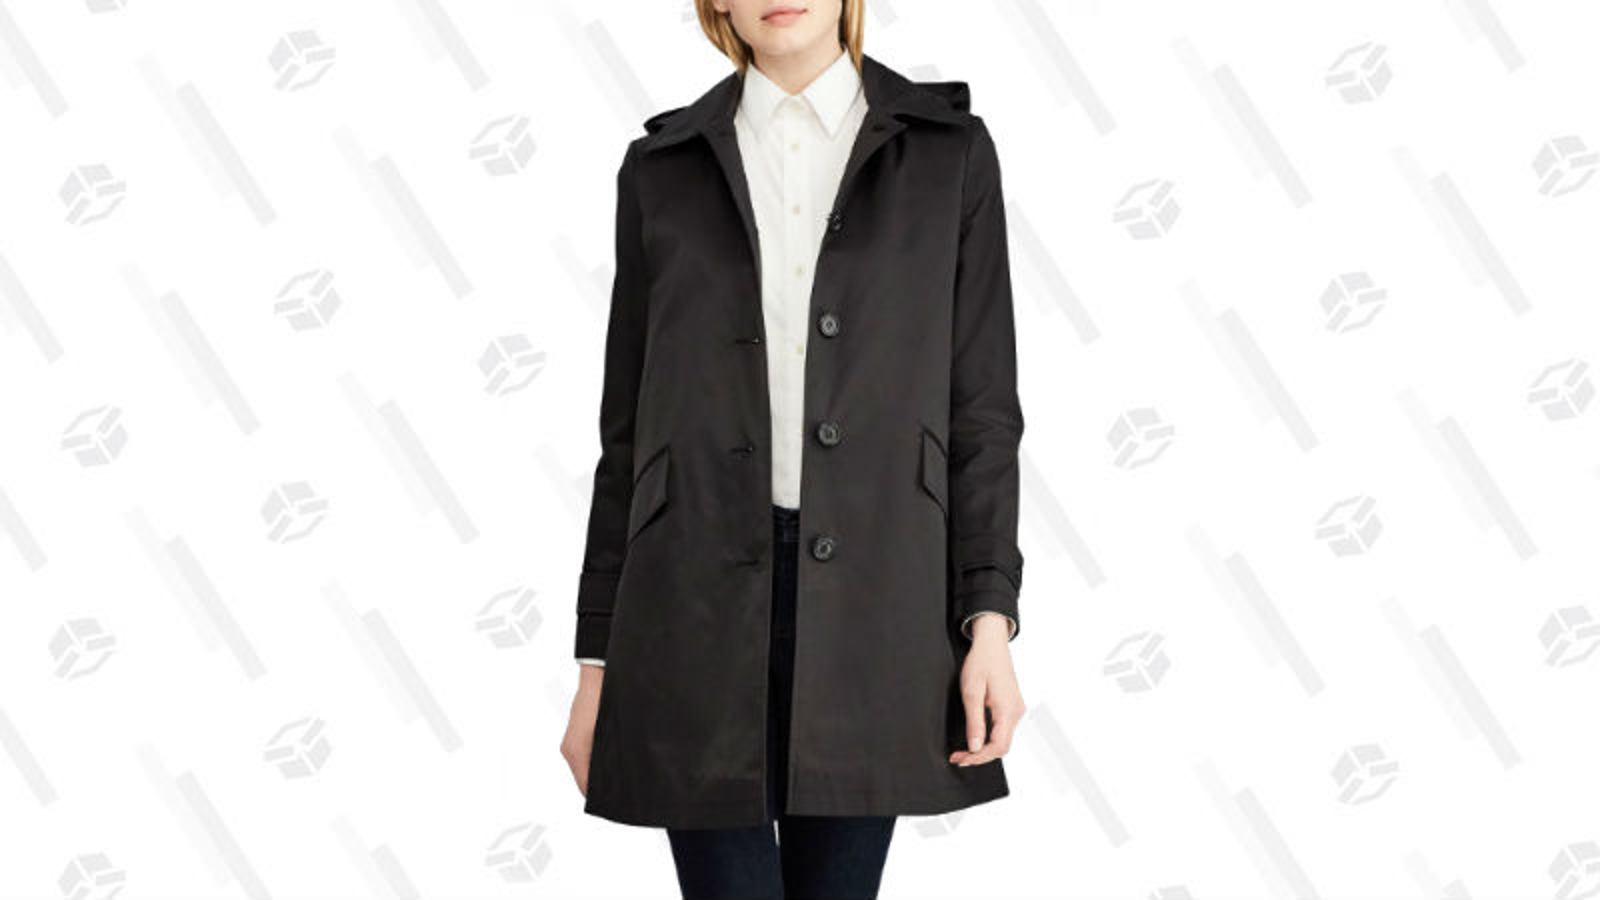 A Cute Rain Jacket Lauren by Ralph Lauren Hooded Raincoat | Nordstrom The thing about London is that it often seems like everyone there looks good, all the time. Whether it's tourists, students, or locals, everyone always looks like they just stepped out of a fashion magazine. For that reason alone, you might consider ditching a rain jacket for something more chic. Don't! Going to London without a raincoat is just asking for trouble. Pick something simple and more sleek that will go with everything, like this black raincoat. It will keep you dry and it looks cute.